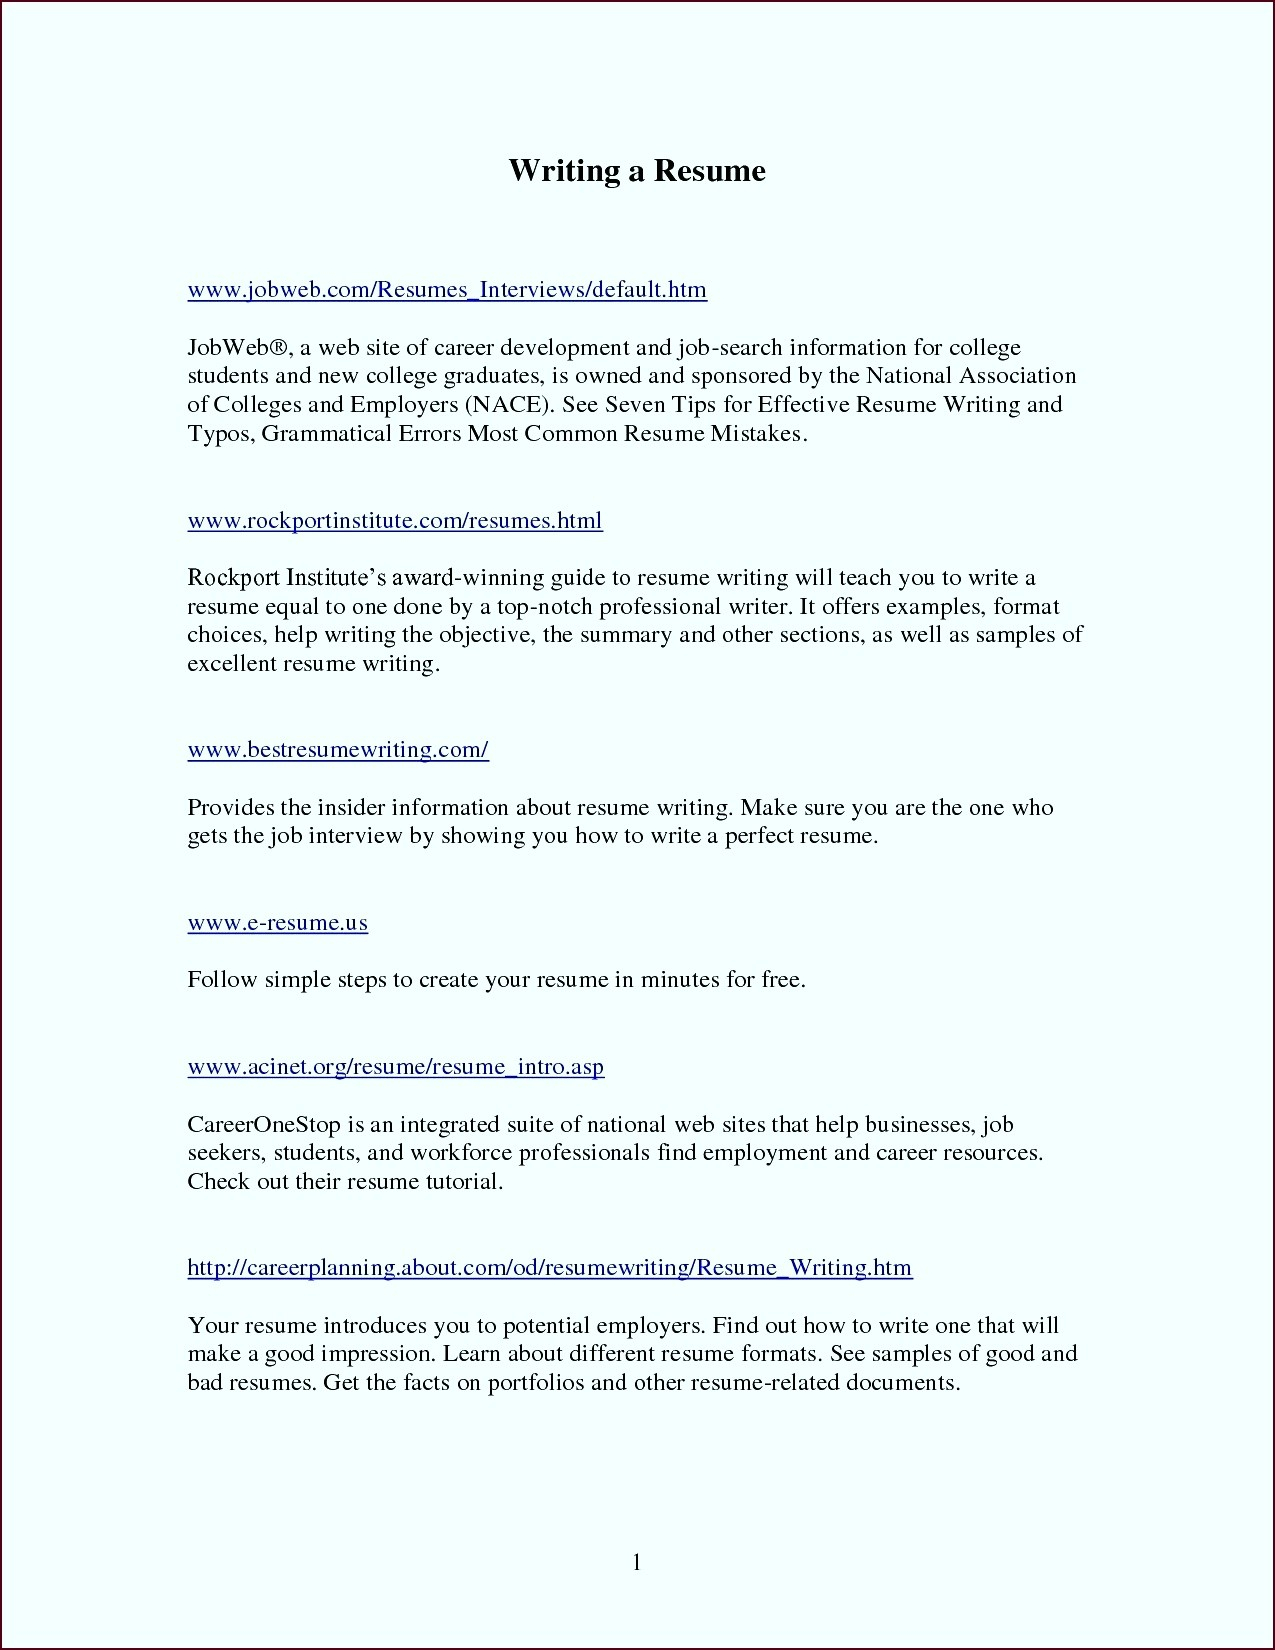 New Employee Offer Letter Template - Cpt Job Fer Letter Sample New 7 Job Fer Letter Template Template